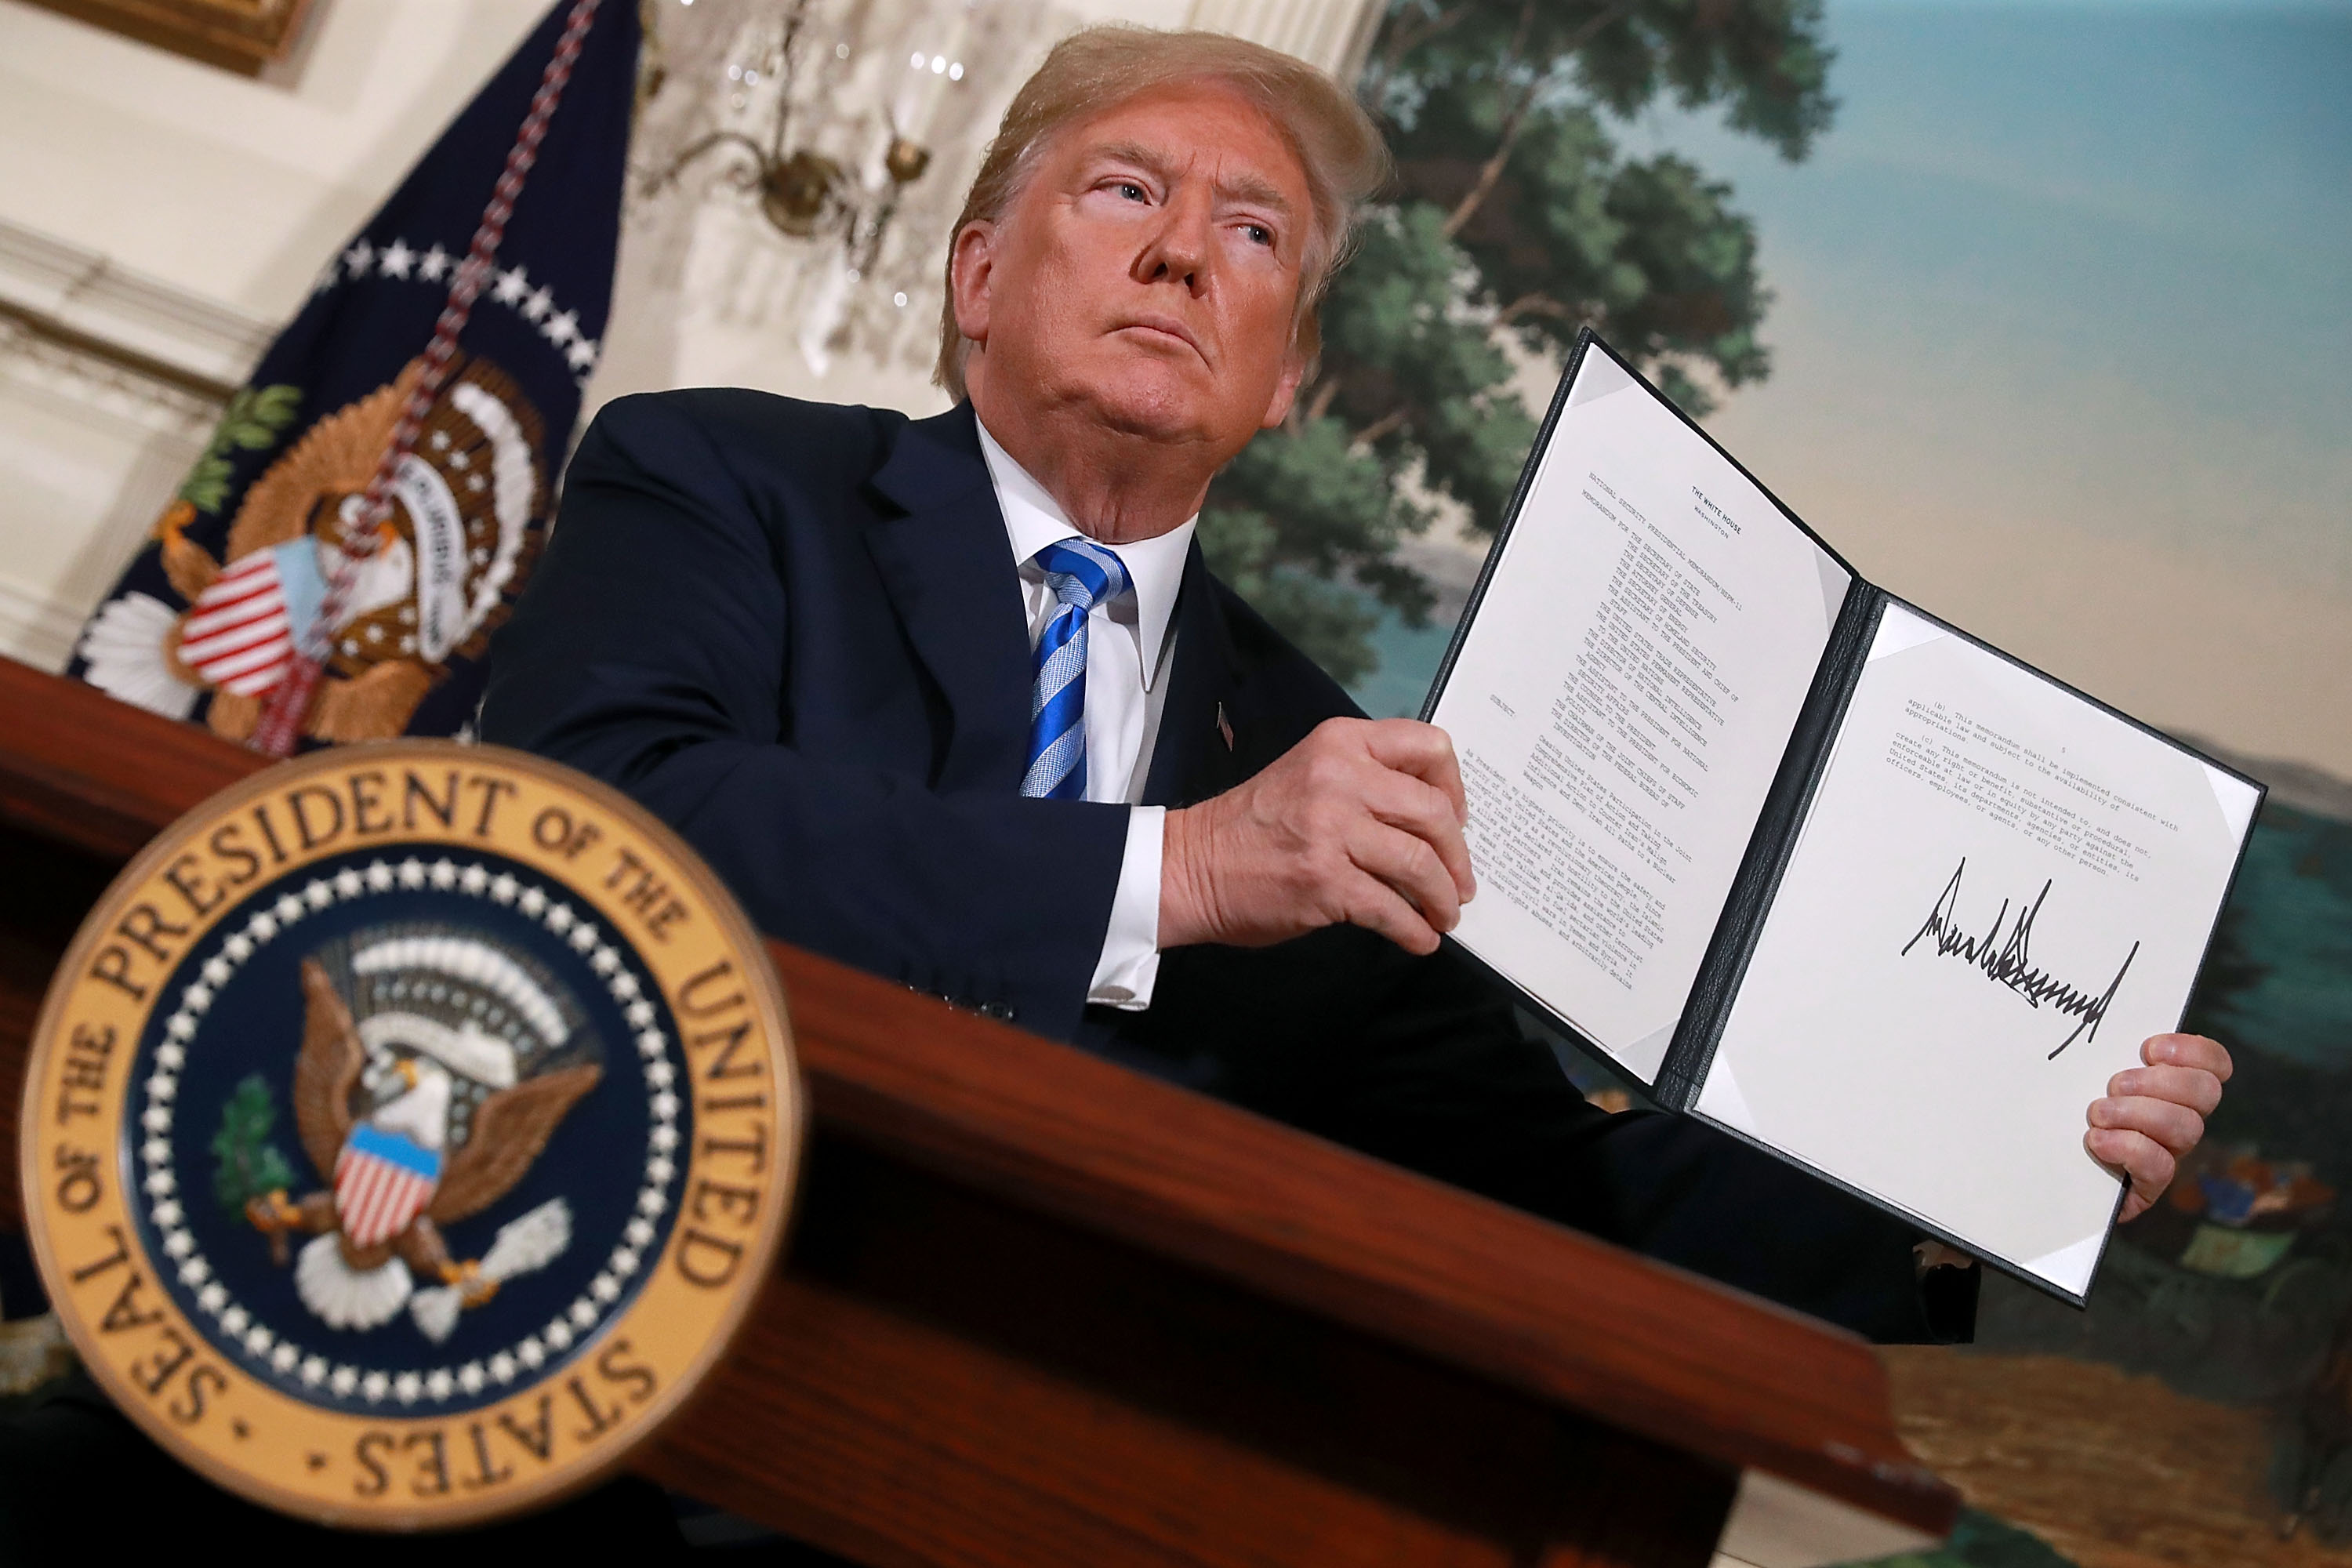 U.S. President Donald Trump holds up a memorandum that reinstates sanctions on Iran after he announced his decision to withdraw the United States from the 2015 Iran nuclear deal in the Diplomatic Room at the White House May 8, 2018 in Washington, D.C.